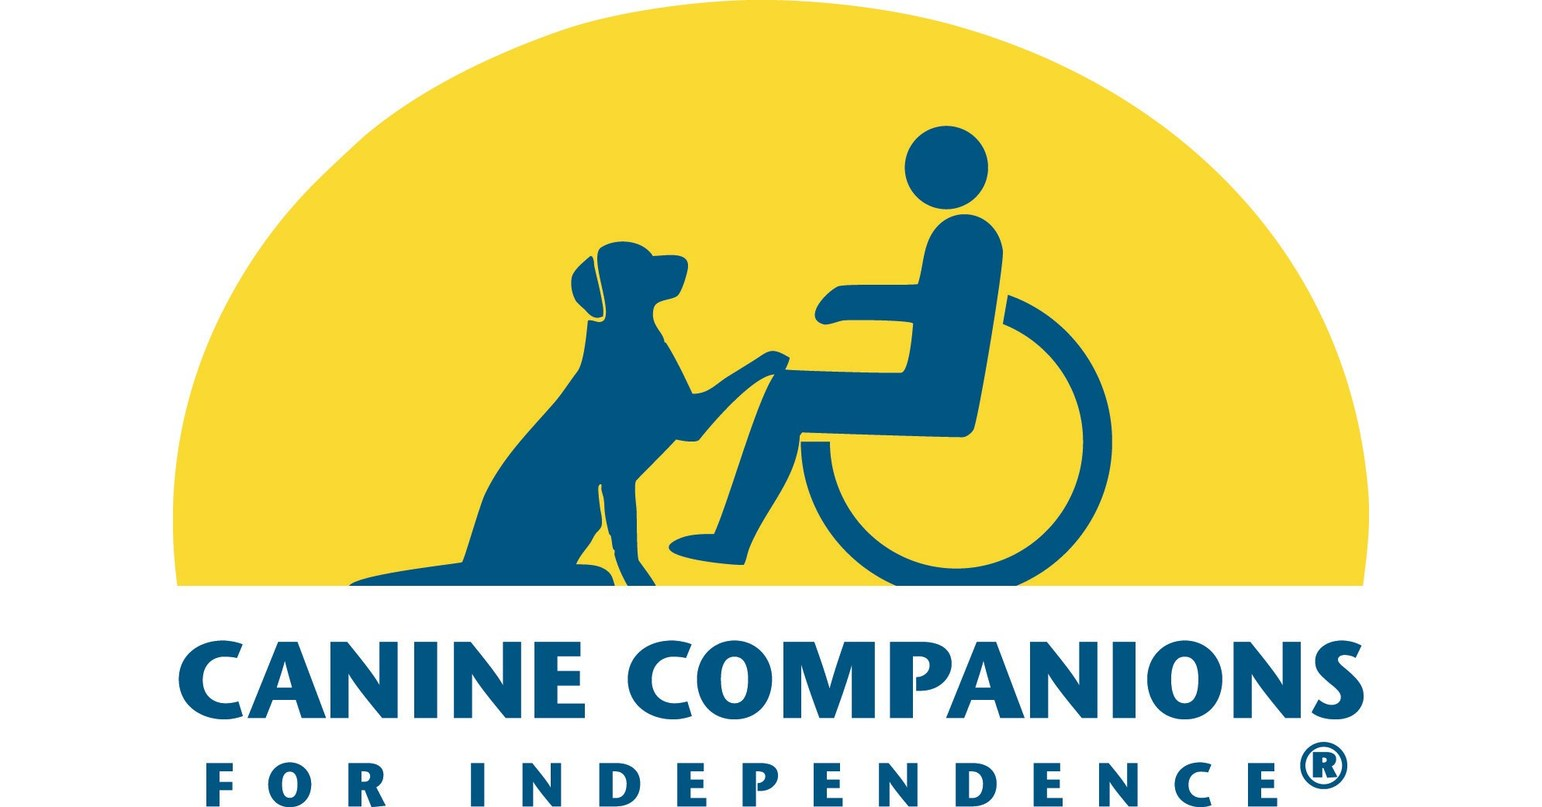 Canine Companions for Independence Logo jpg?p=facebook.